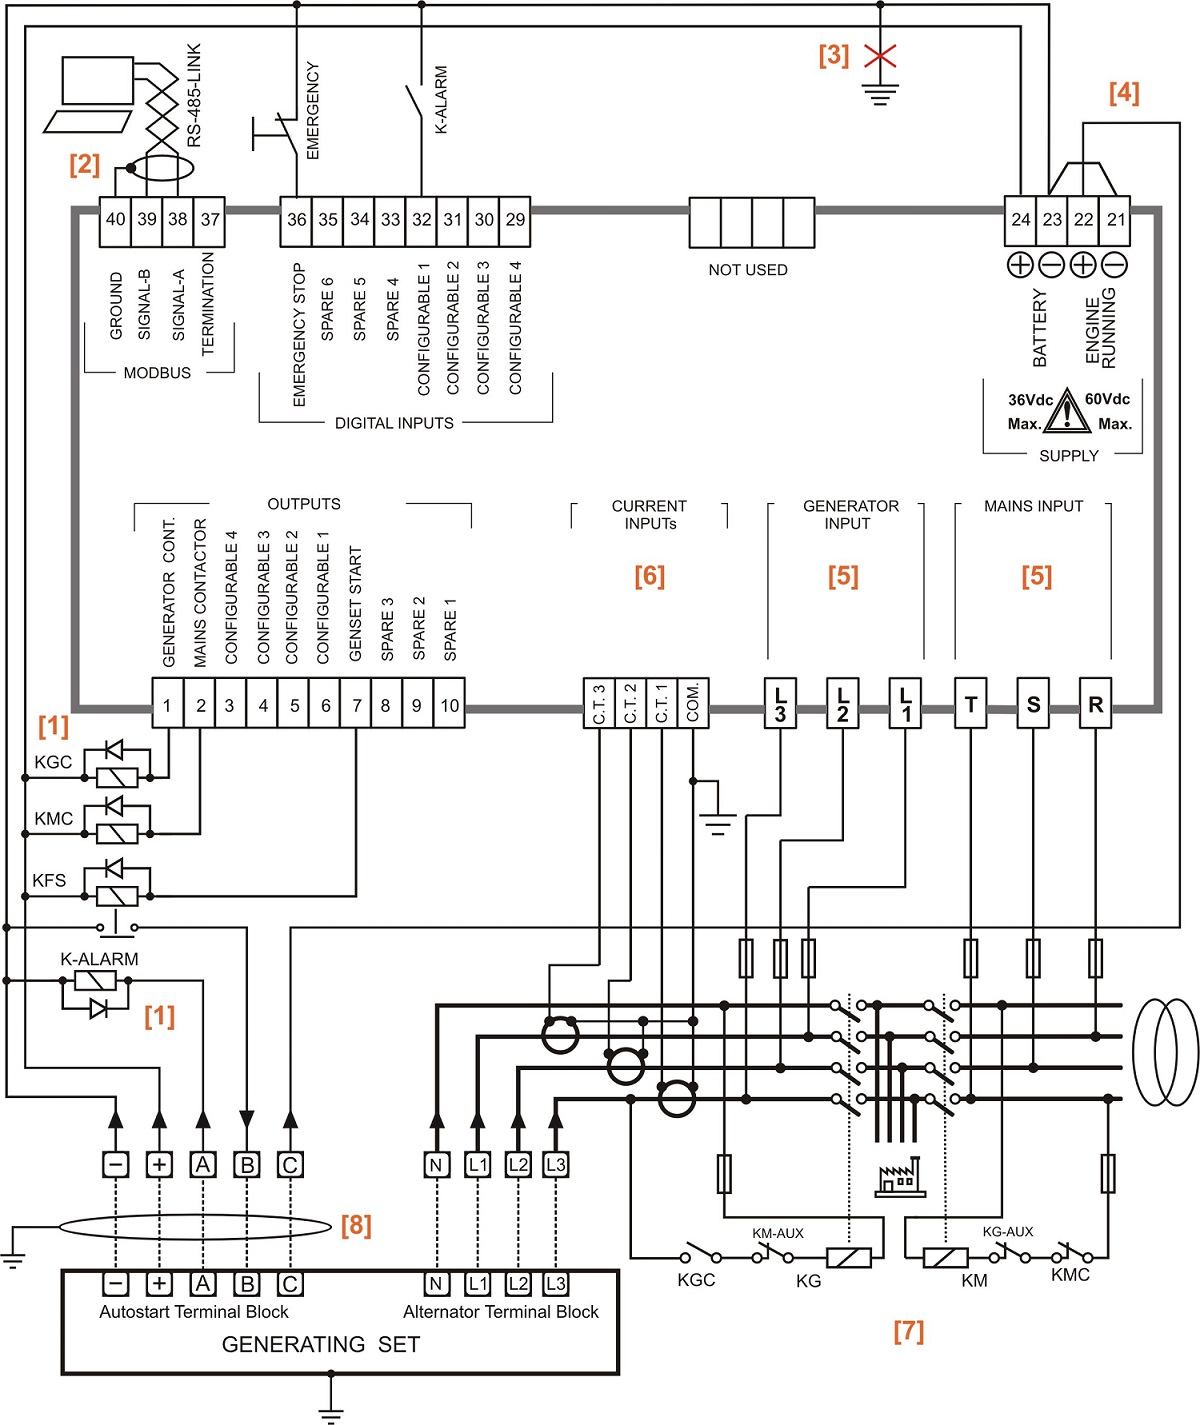 Be28 Automatic Transfer Switch Controller Connections automatic transfer switch circuit diagram genset controller wiring diagram for a transfer switch at creativeand.co